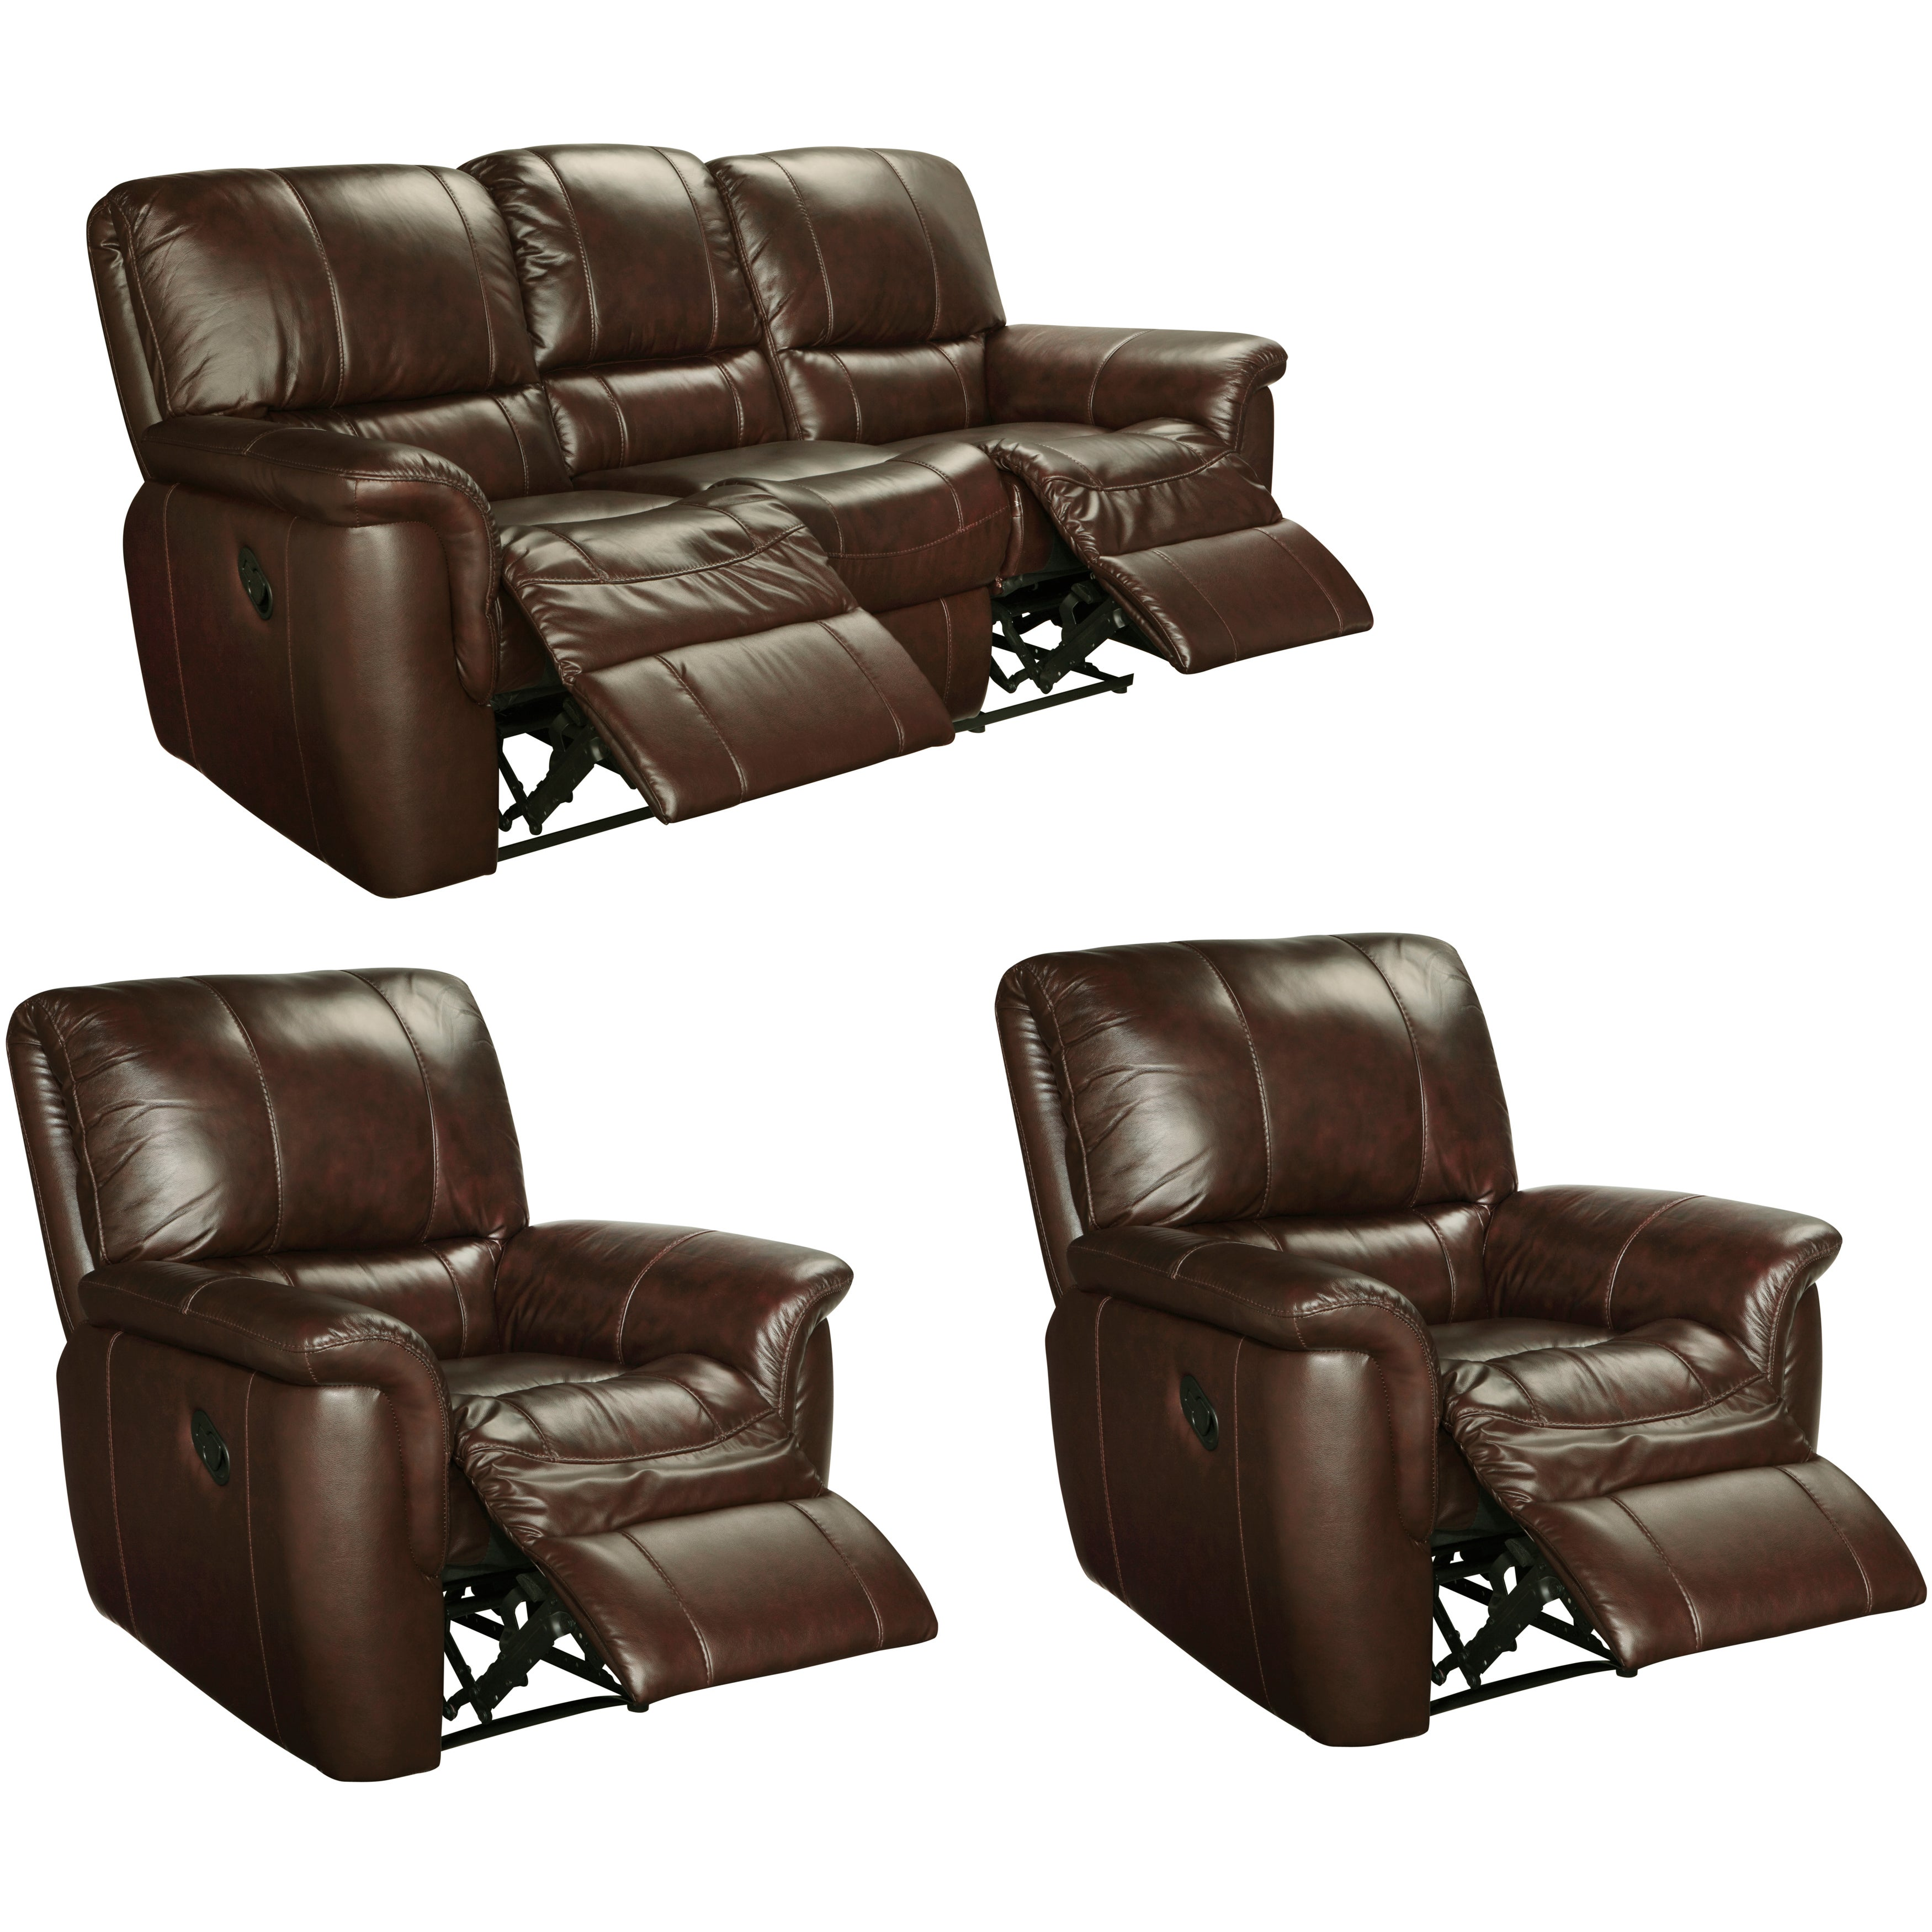 Ethan Chestnut Brown Leather Reclining Sofa and Two Recliner Chairs at Sears.com